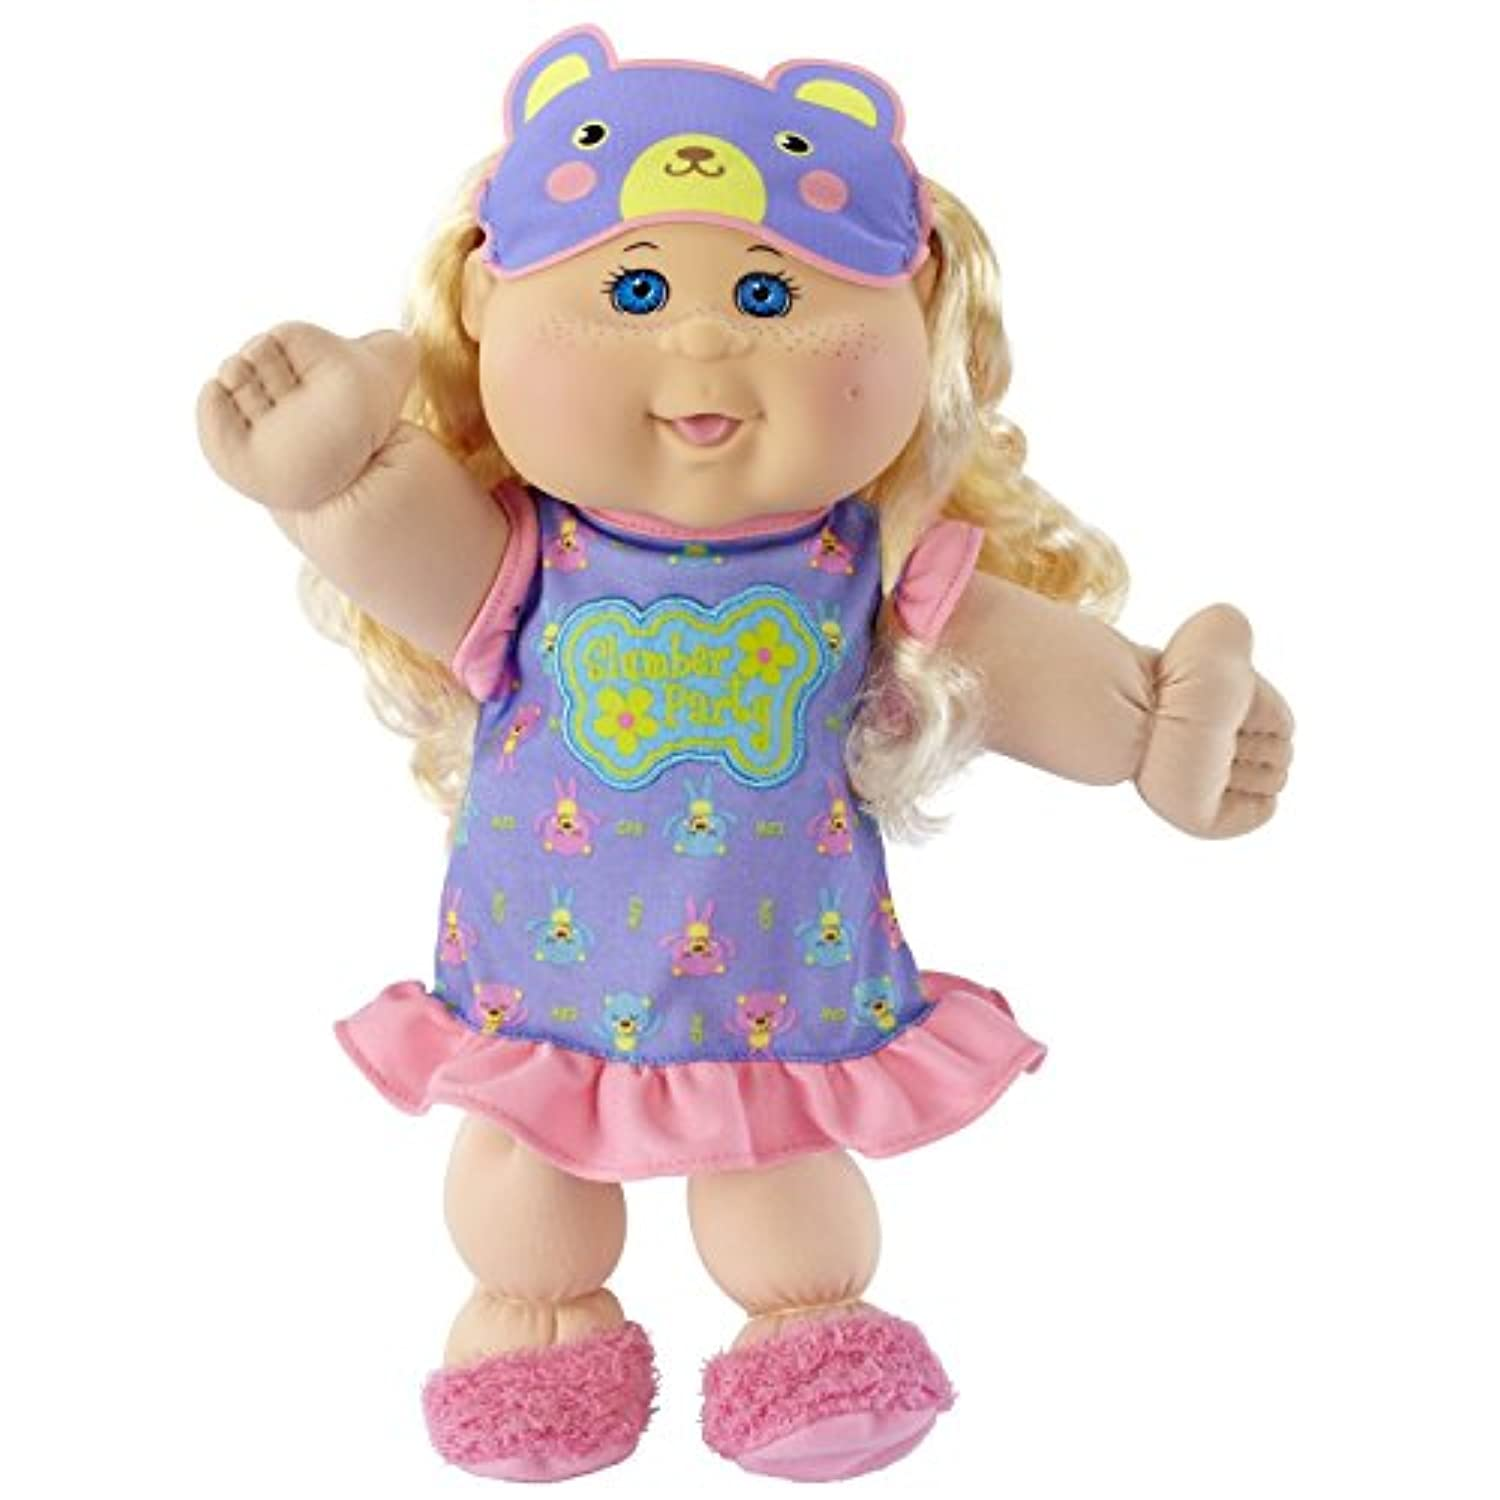 Cabbage Patch Kids - Cabbage Patch Kids Glow Party Blonde Doll